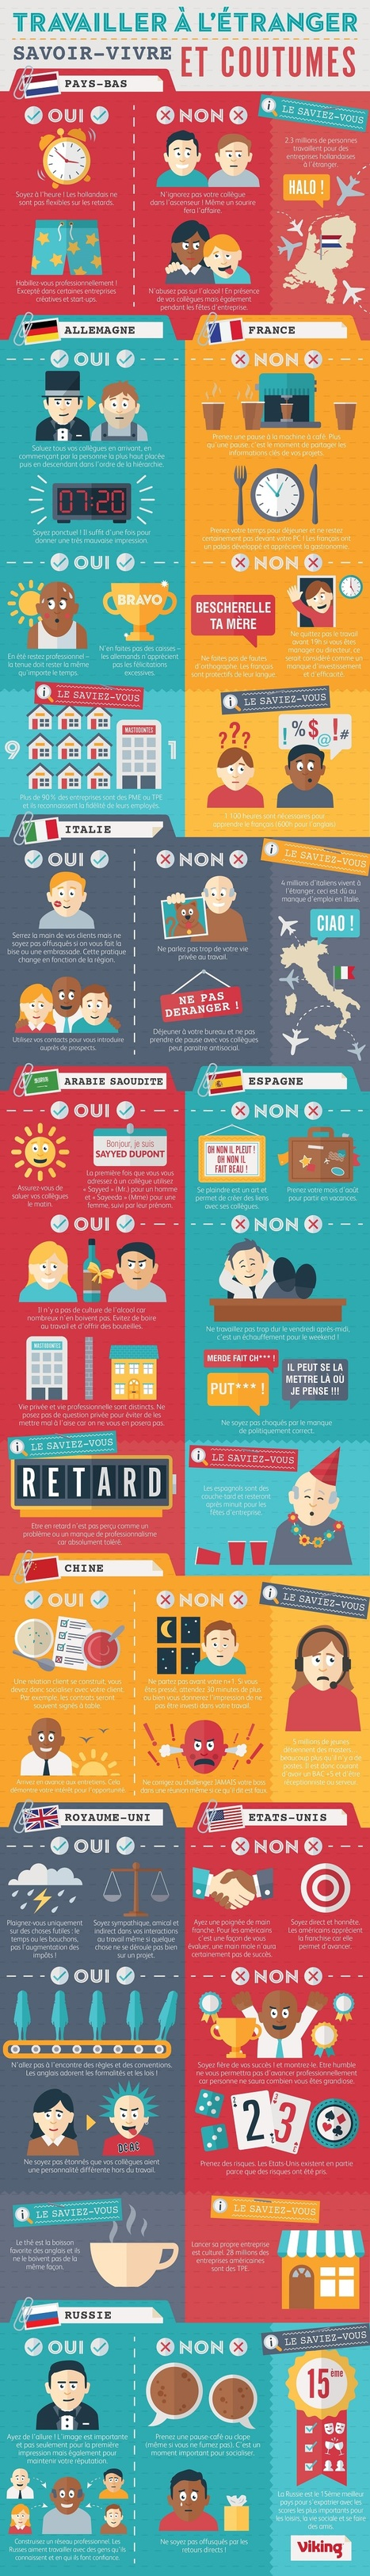 Us et coutumes | Les infographies ! | Scoop.it